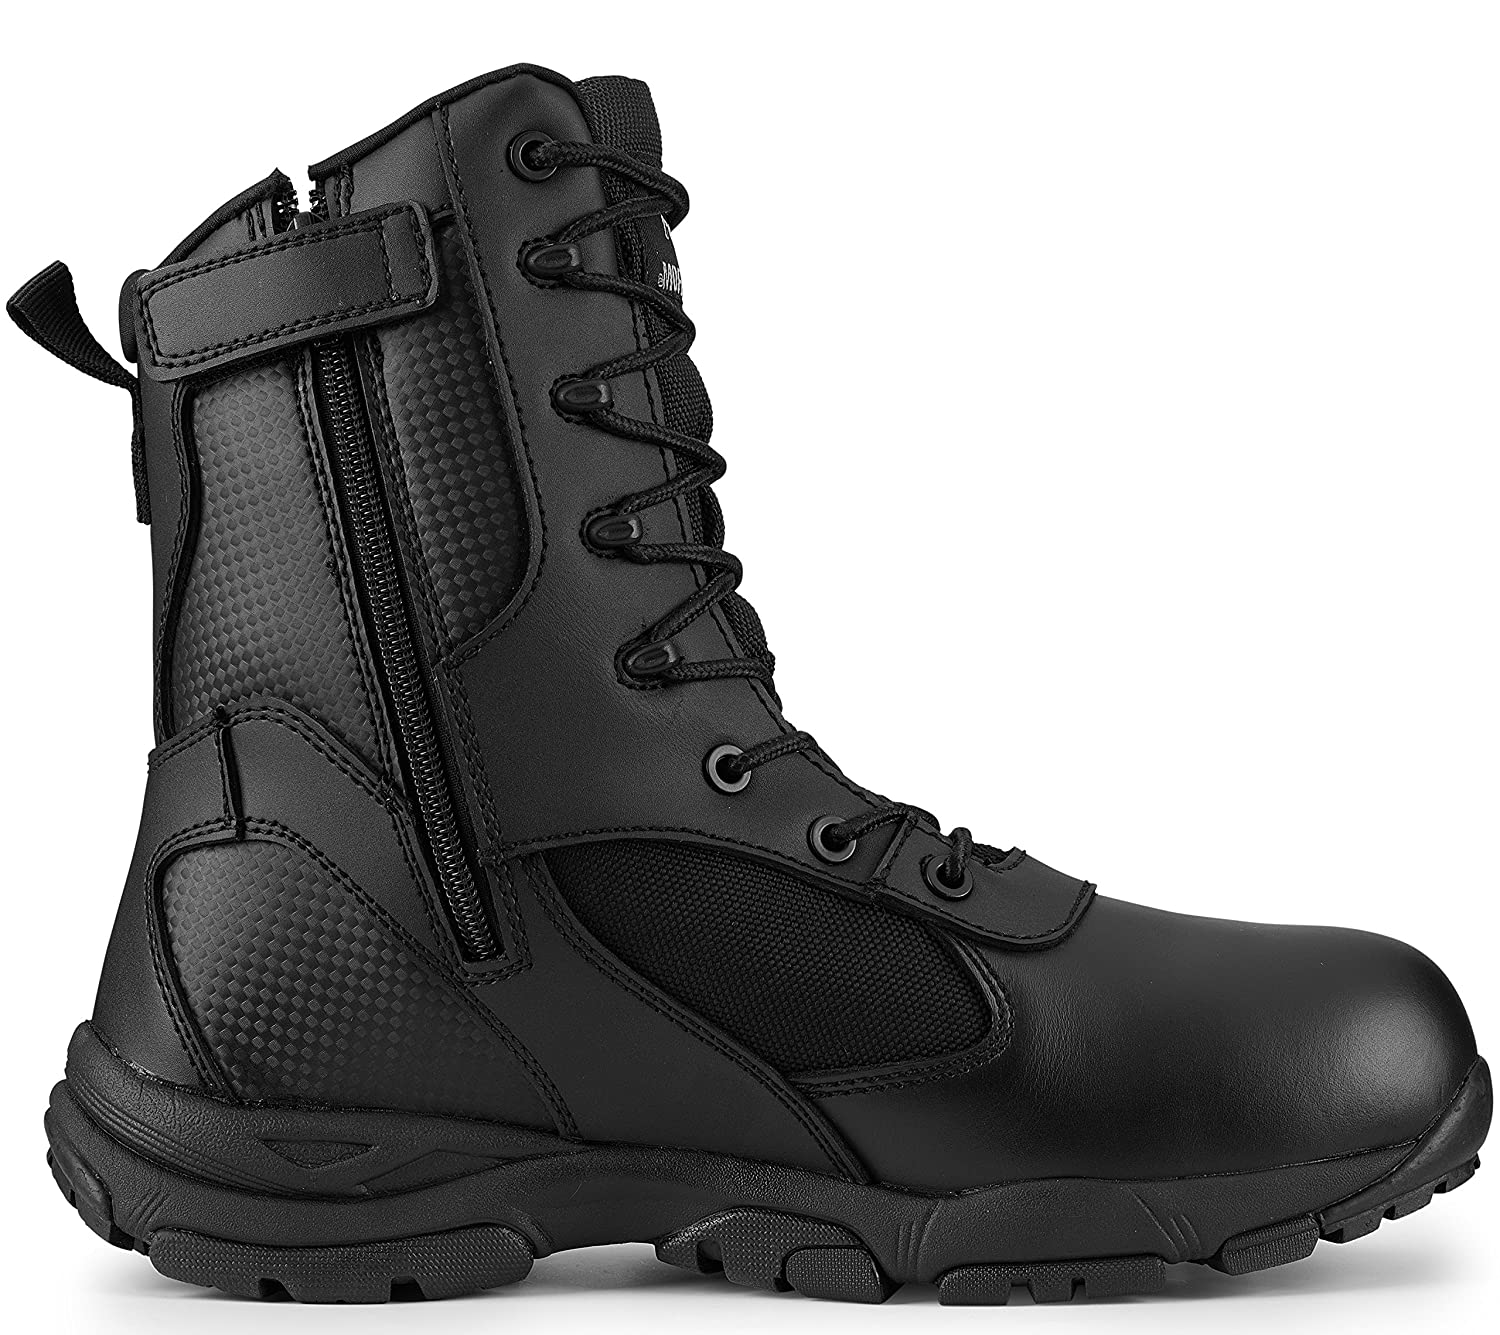 Maelstrom Men's TAC ATHLON 8 Black Side Zipper Tactical Work Boots Law Enforcement, Security, Work and Military | Athletic, Waterproof, Breathable, Comfortable | Lightweight 17.5 oz | One Year Warranty, Size 11M 4180Z WP